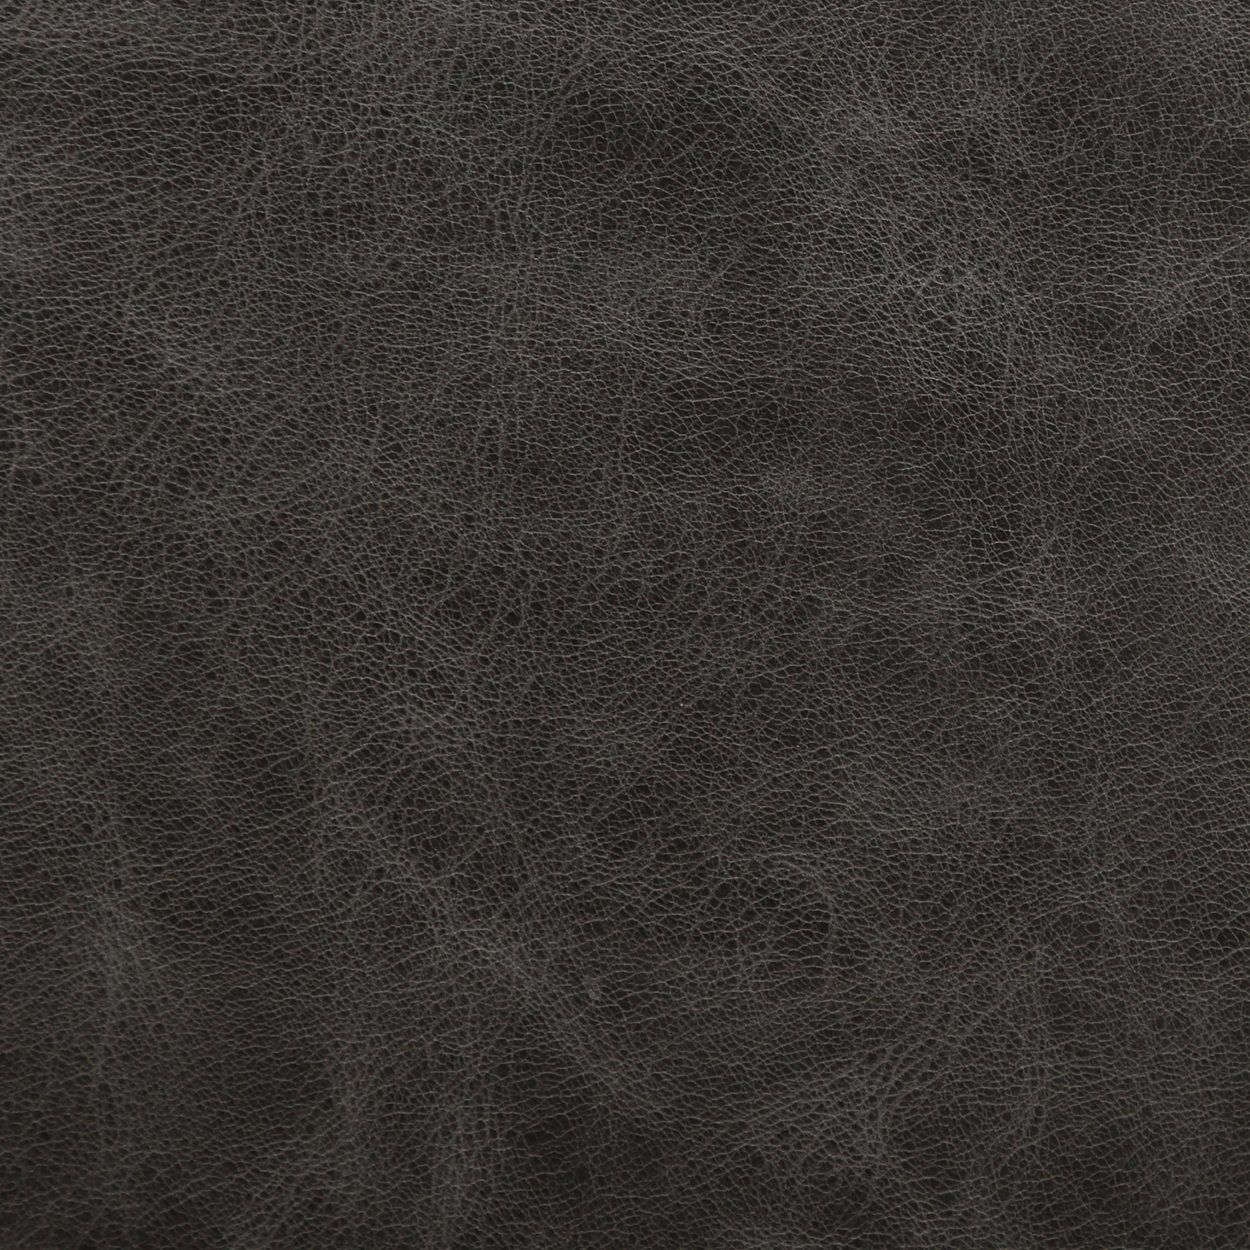 Onyx - Leather Distressed